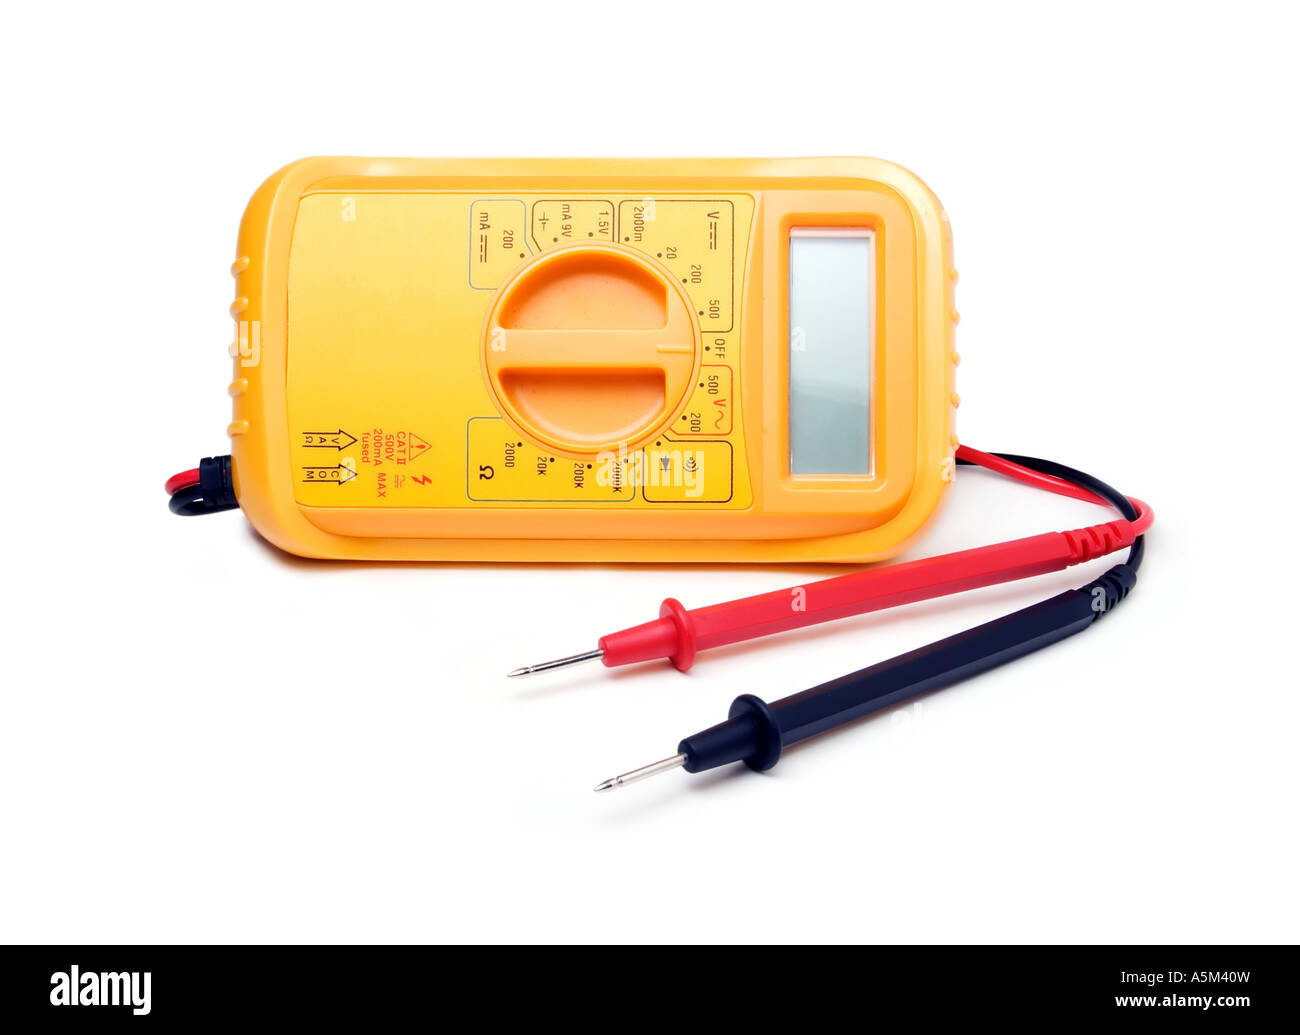 Generic current voltage multi meter instrument - Stock Image